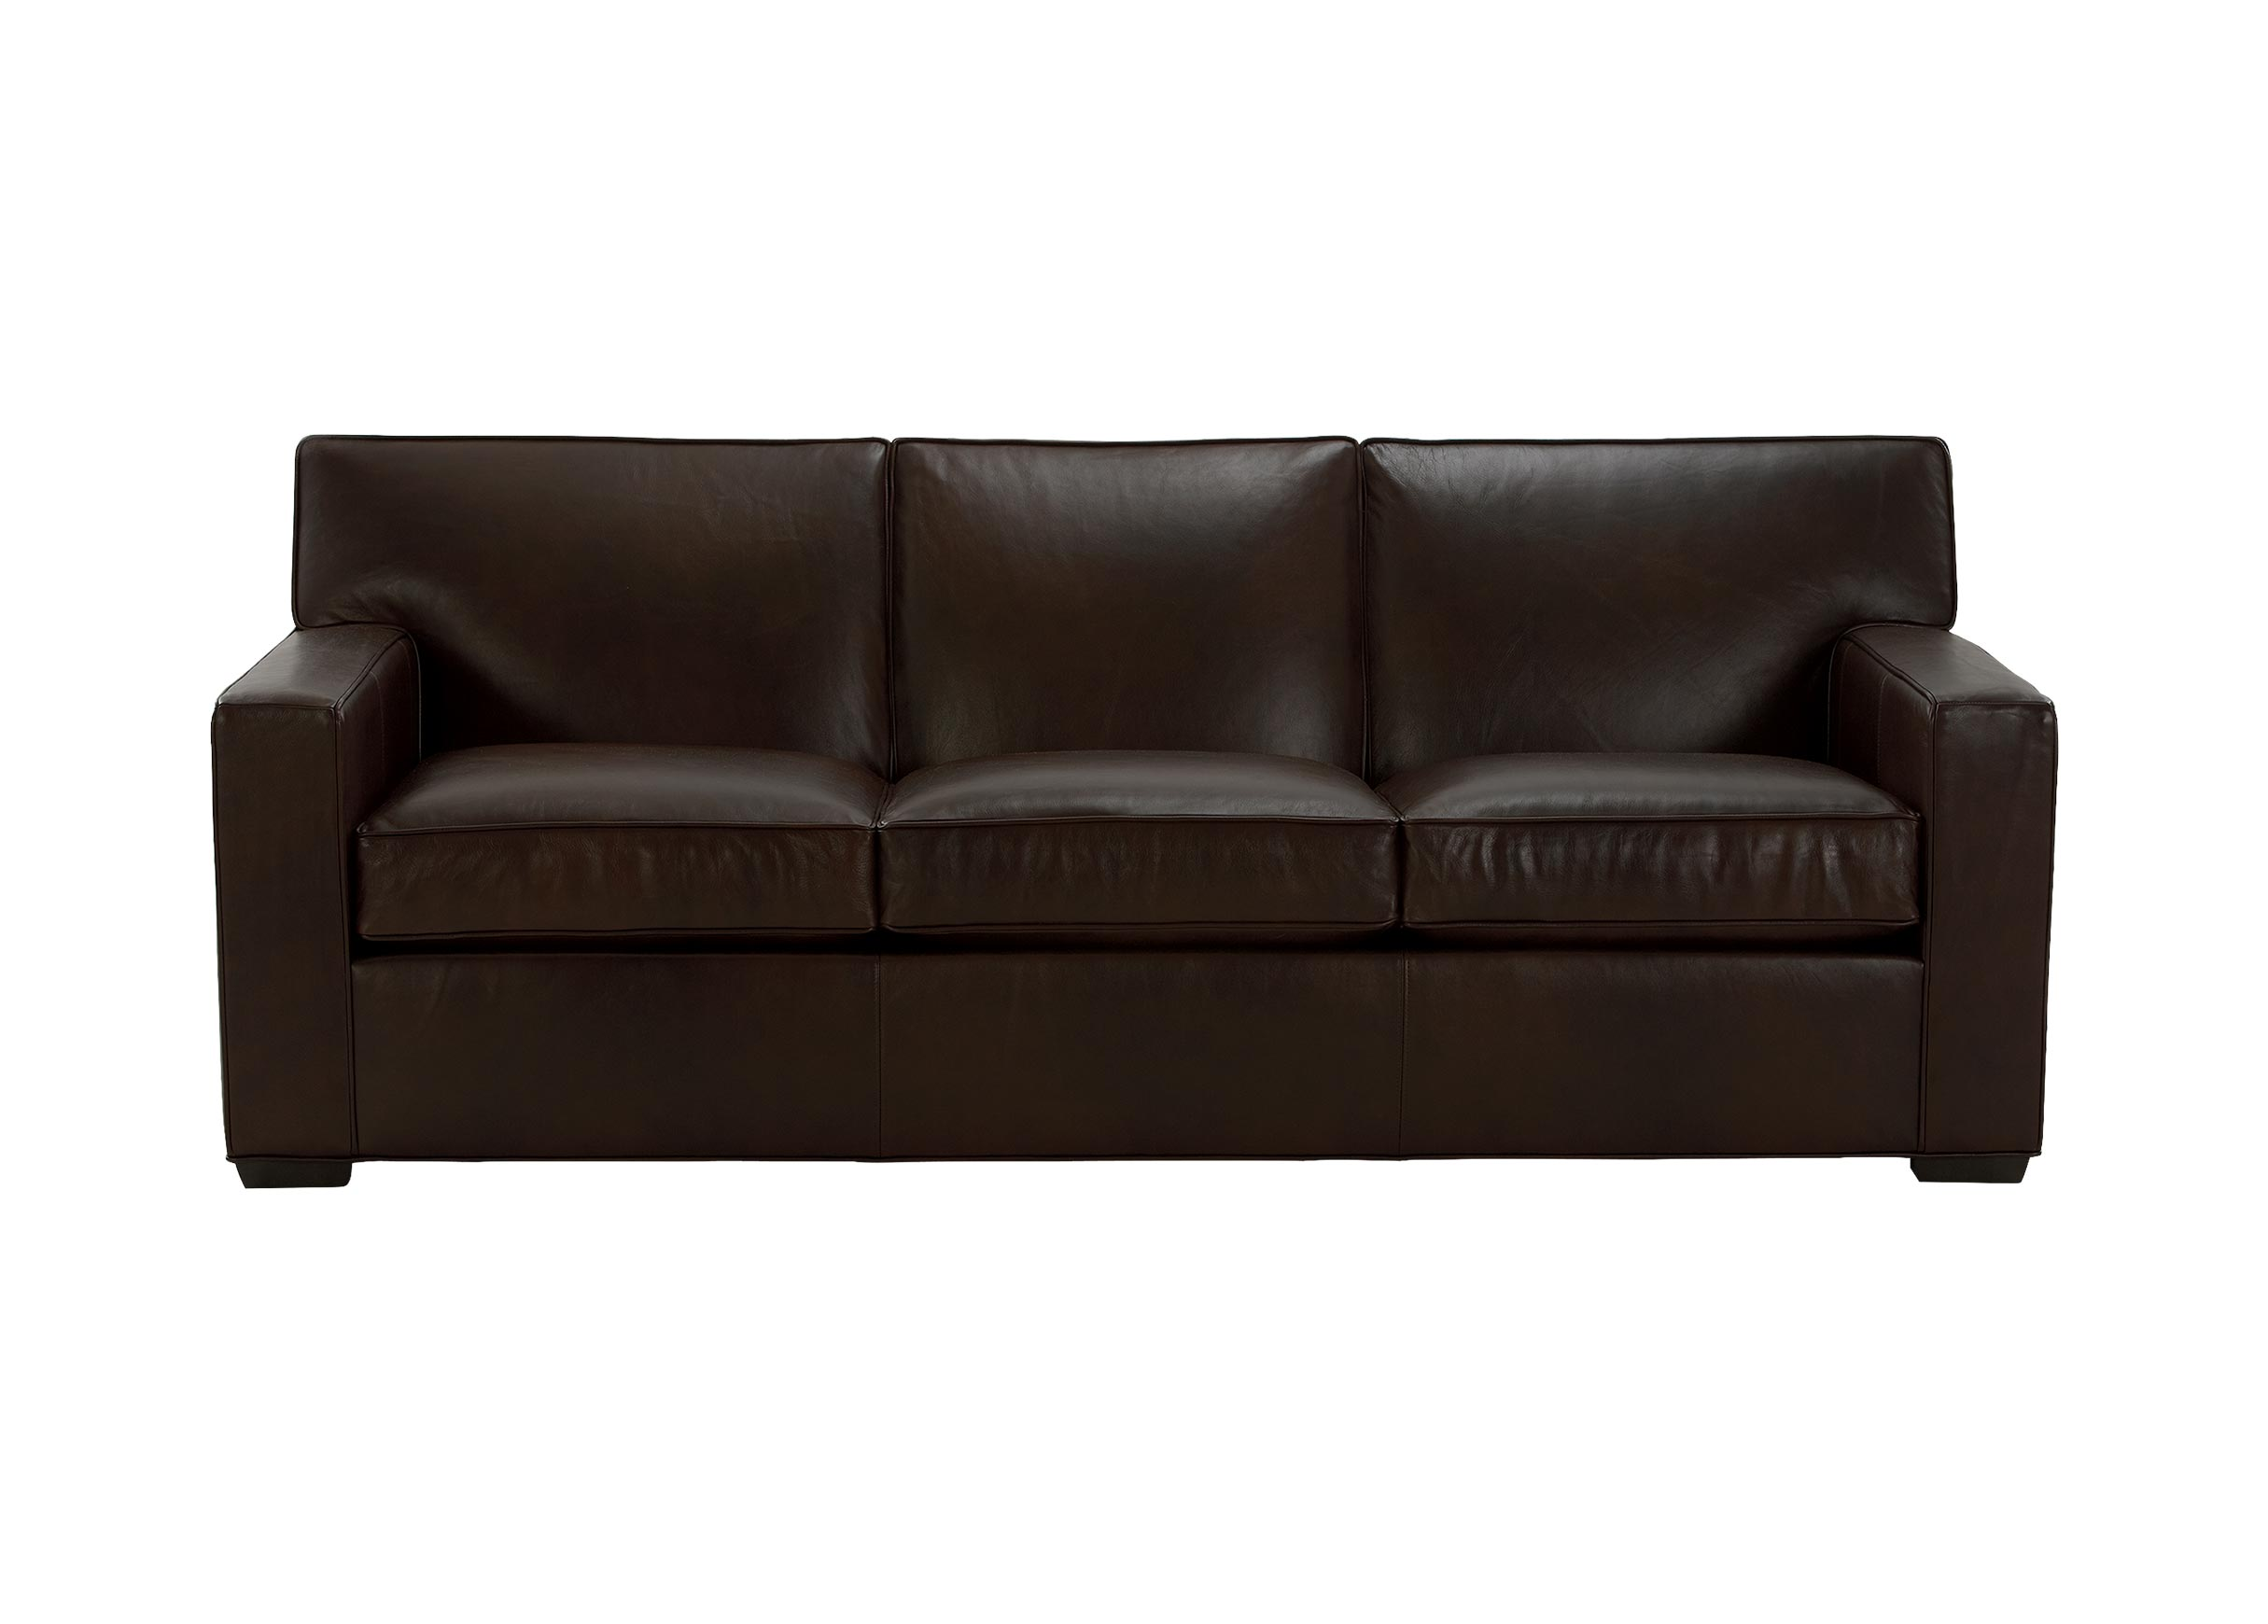 Delicieux Kendall Leather Sofa